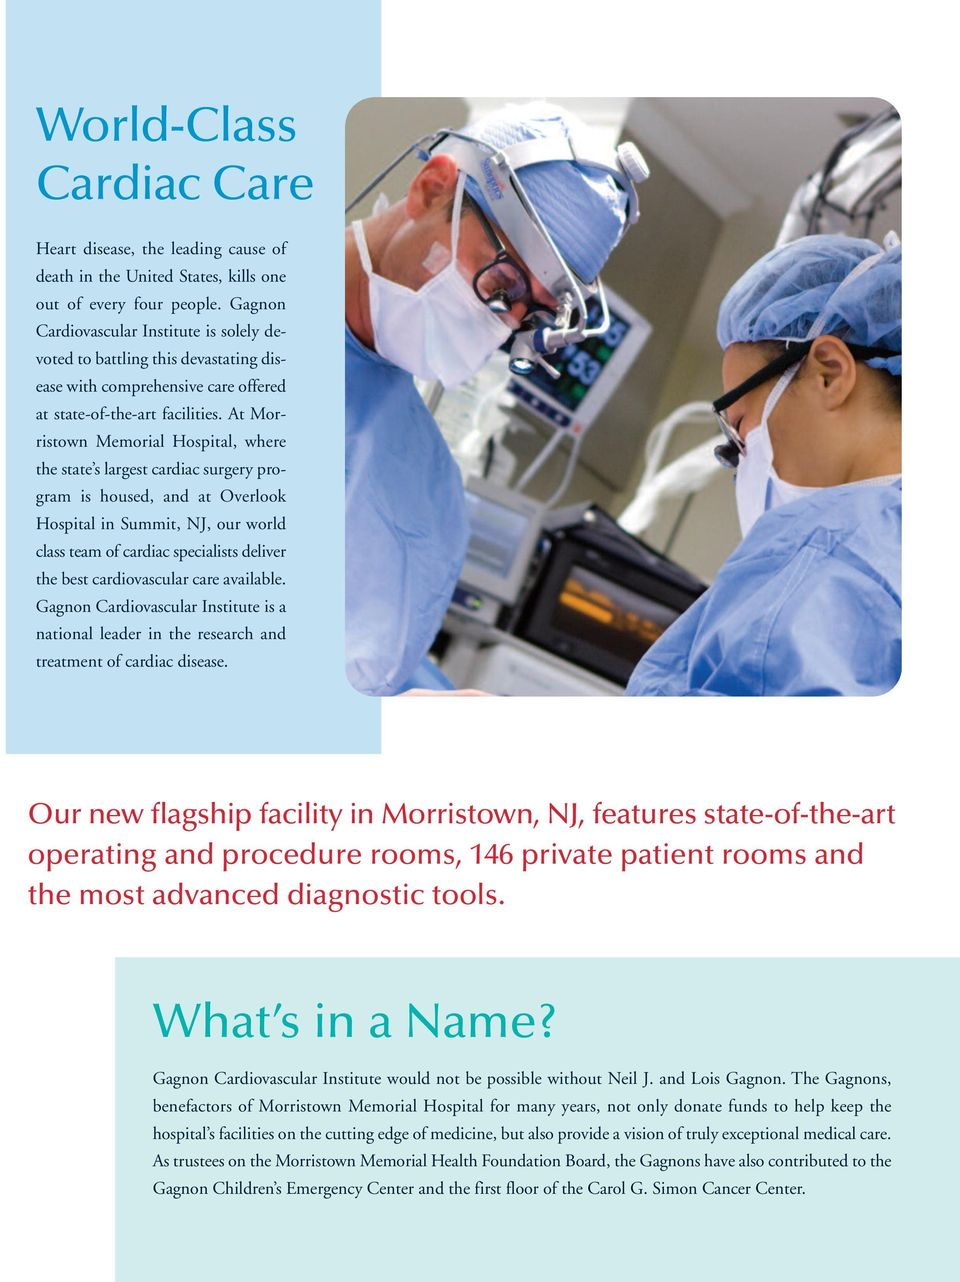 At Morristown Memorial Hospital, where the state s largest cardiac surgery program is housed, and at Overlook Hospital in Summit, NJ, our world class team of cardiac specialists deliver the best